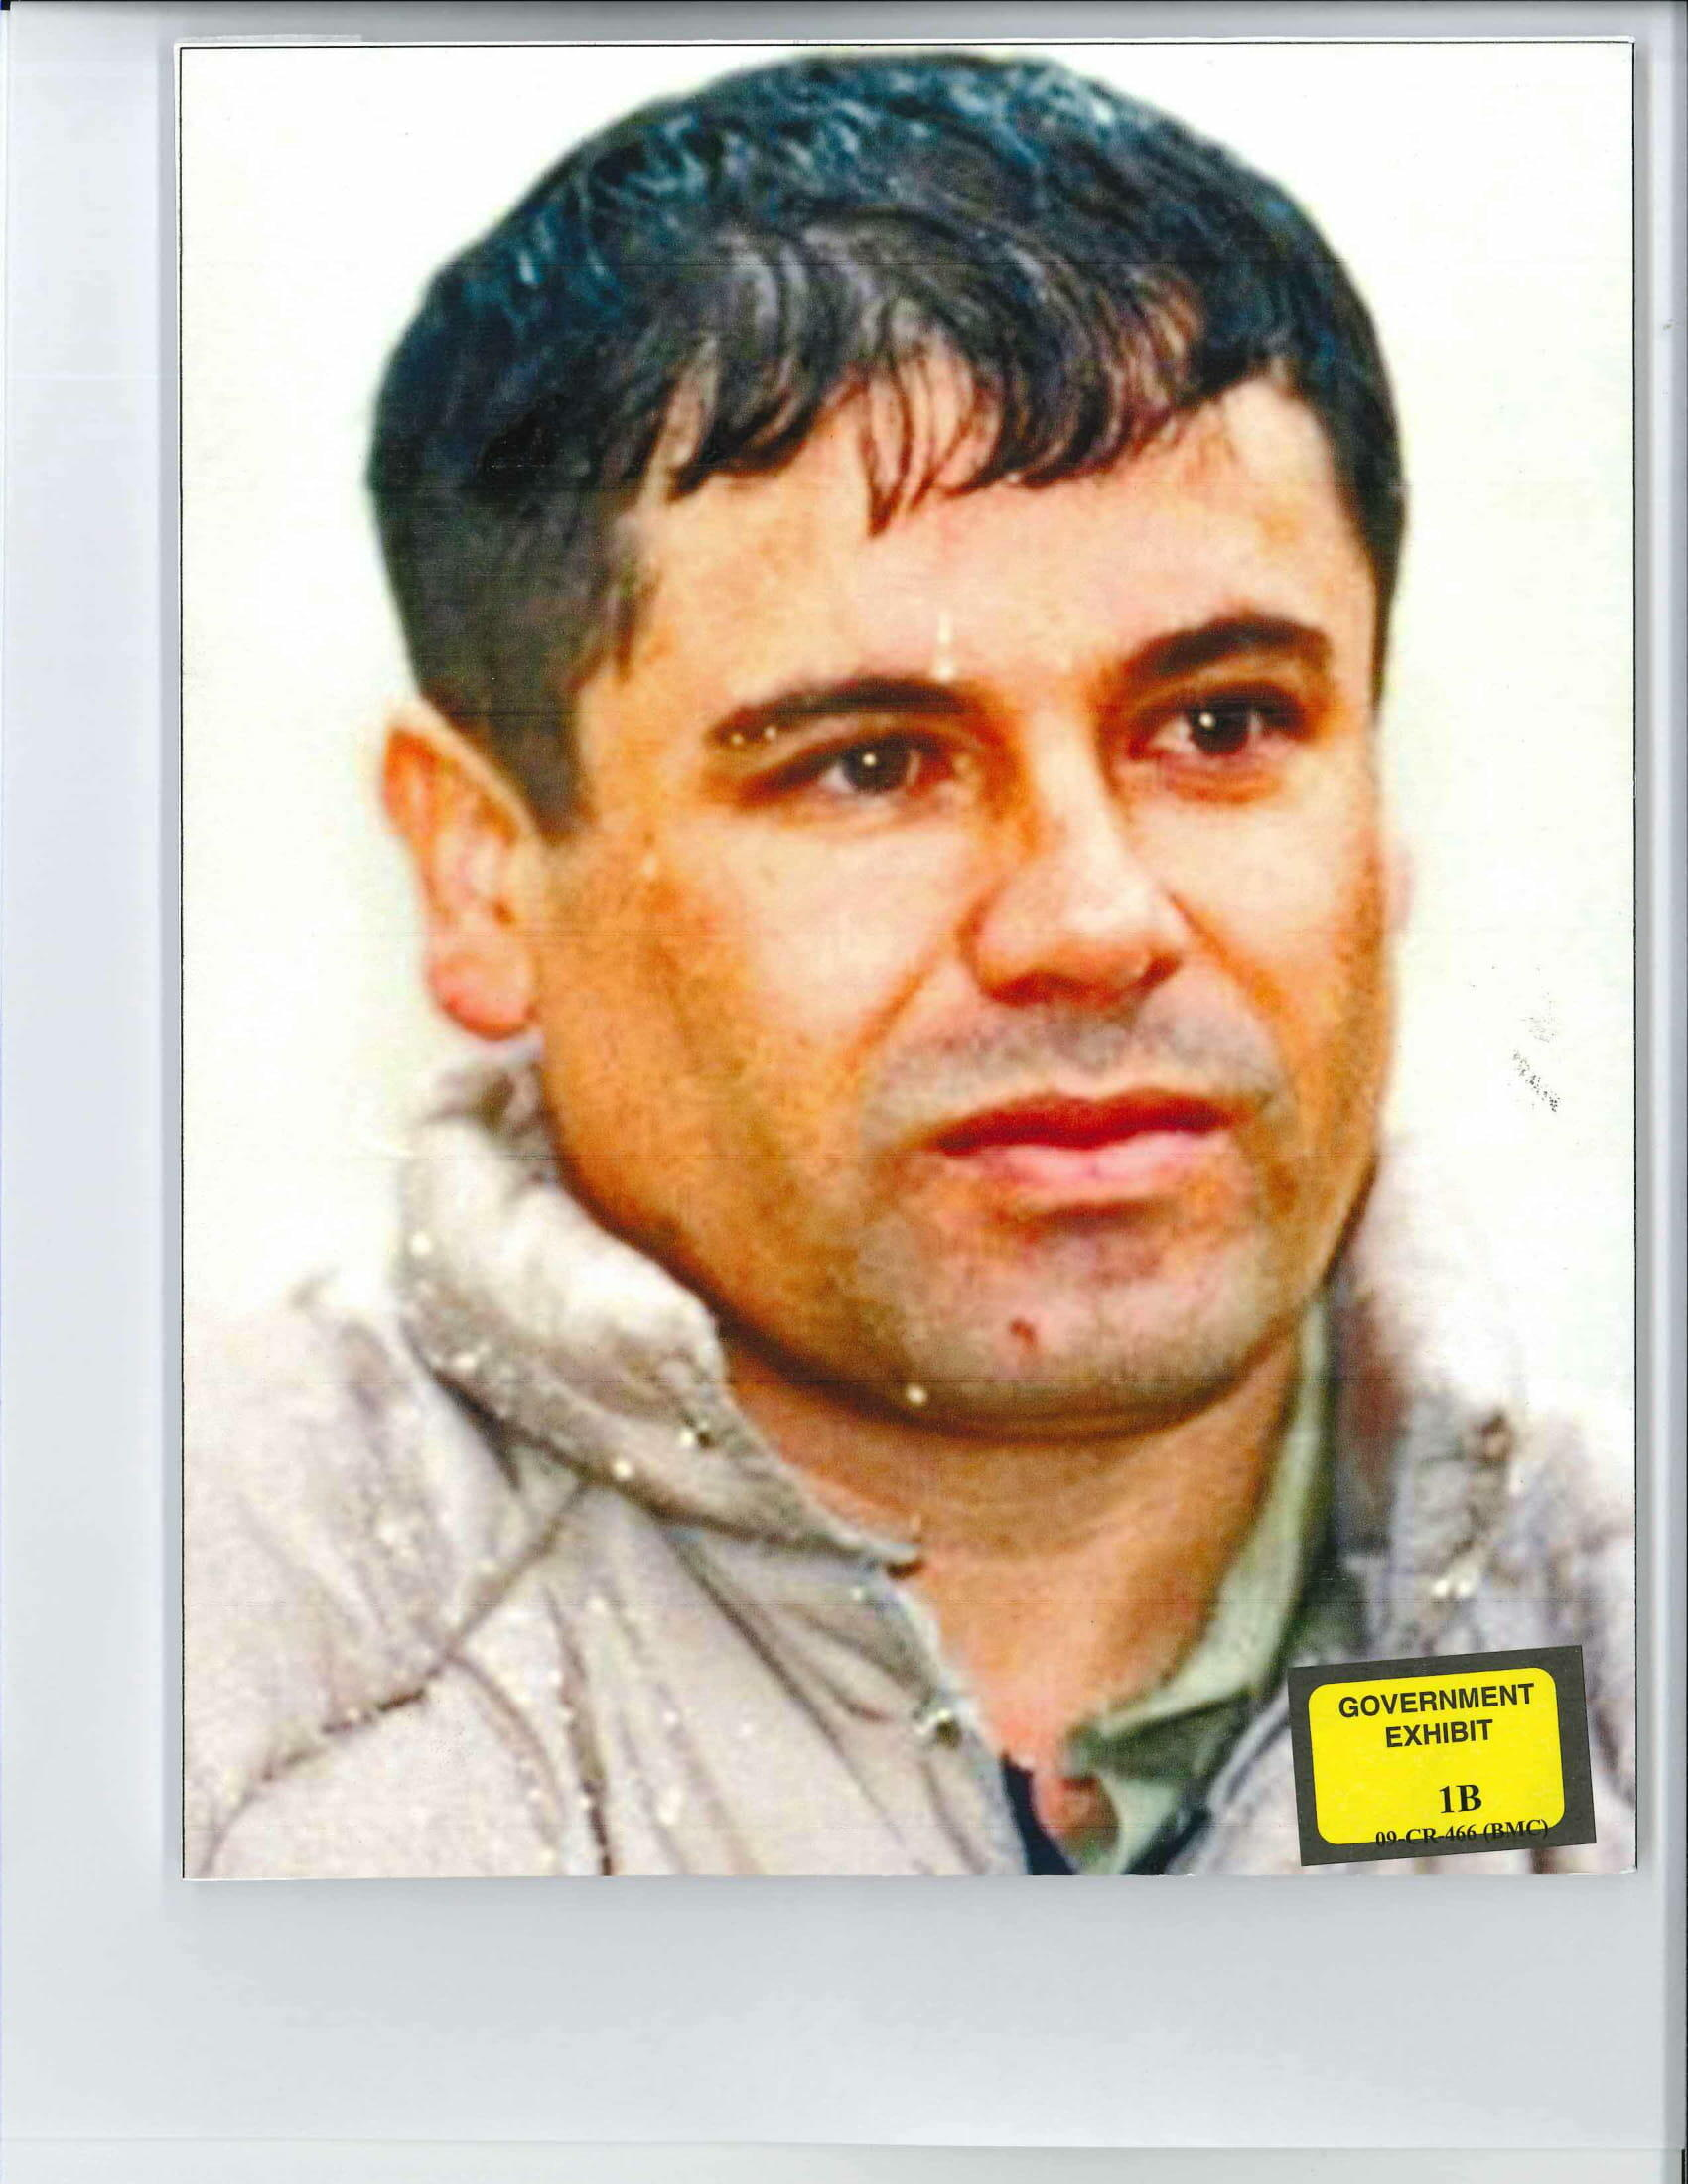 El Chapo's Story May Be Coming to a Close